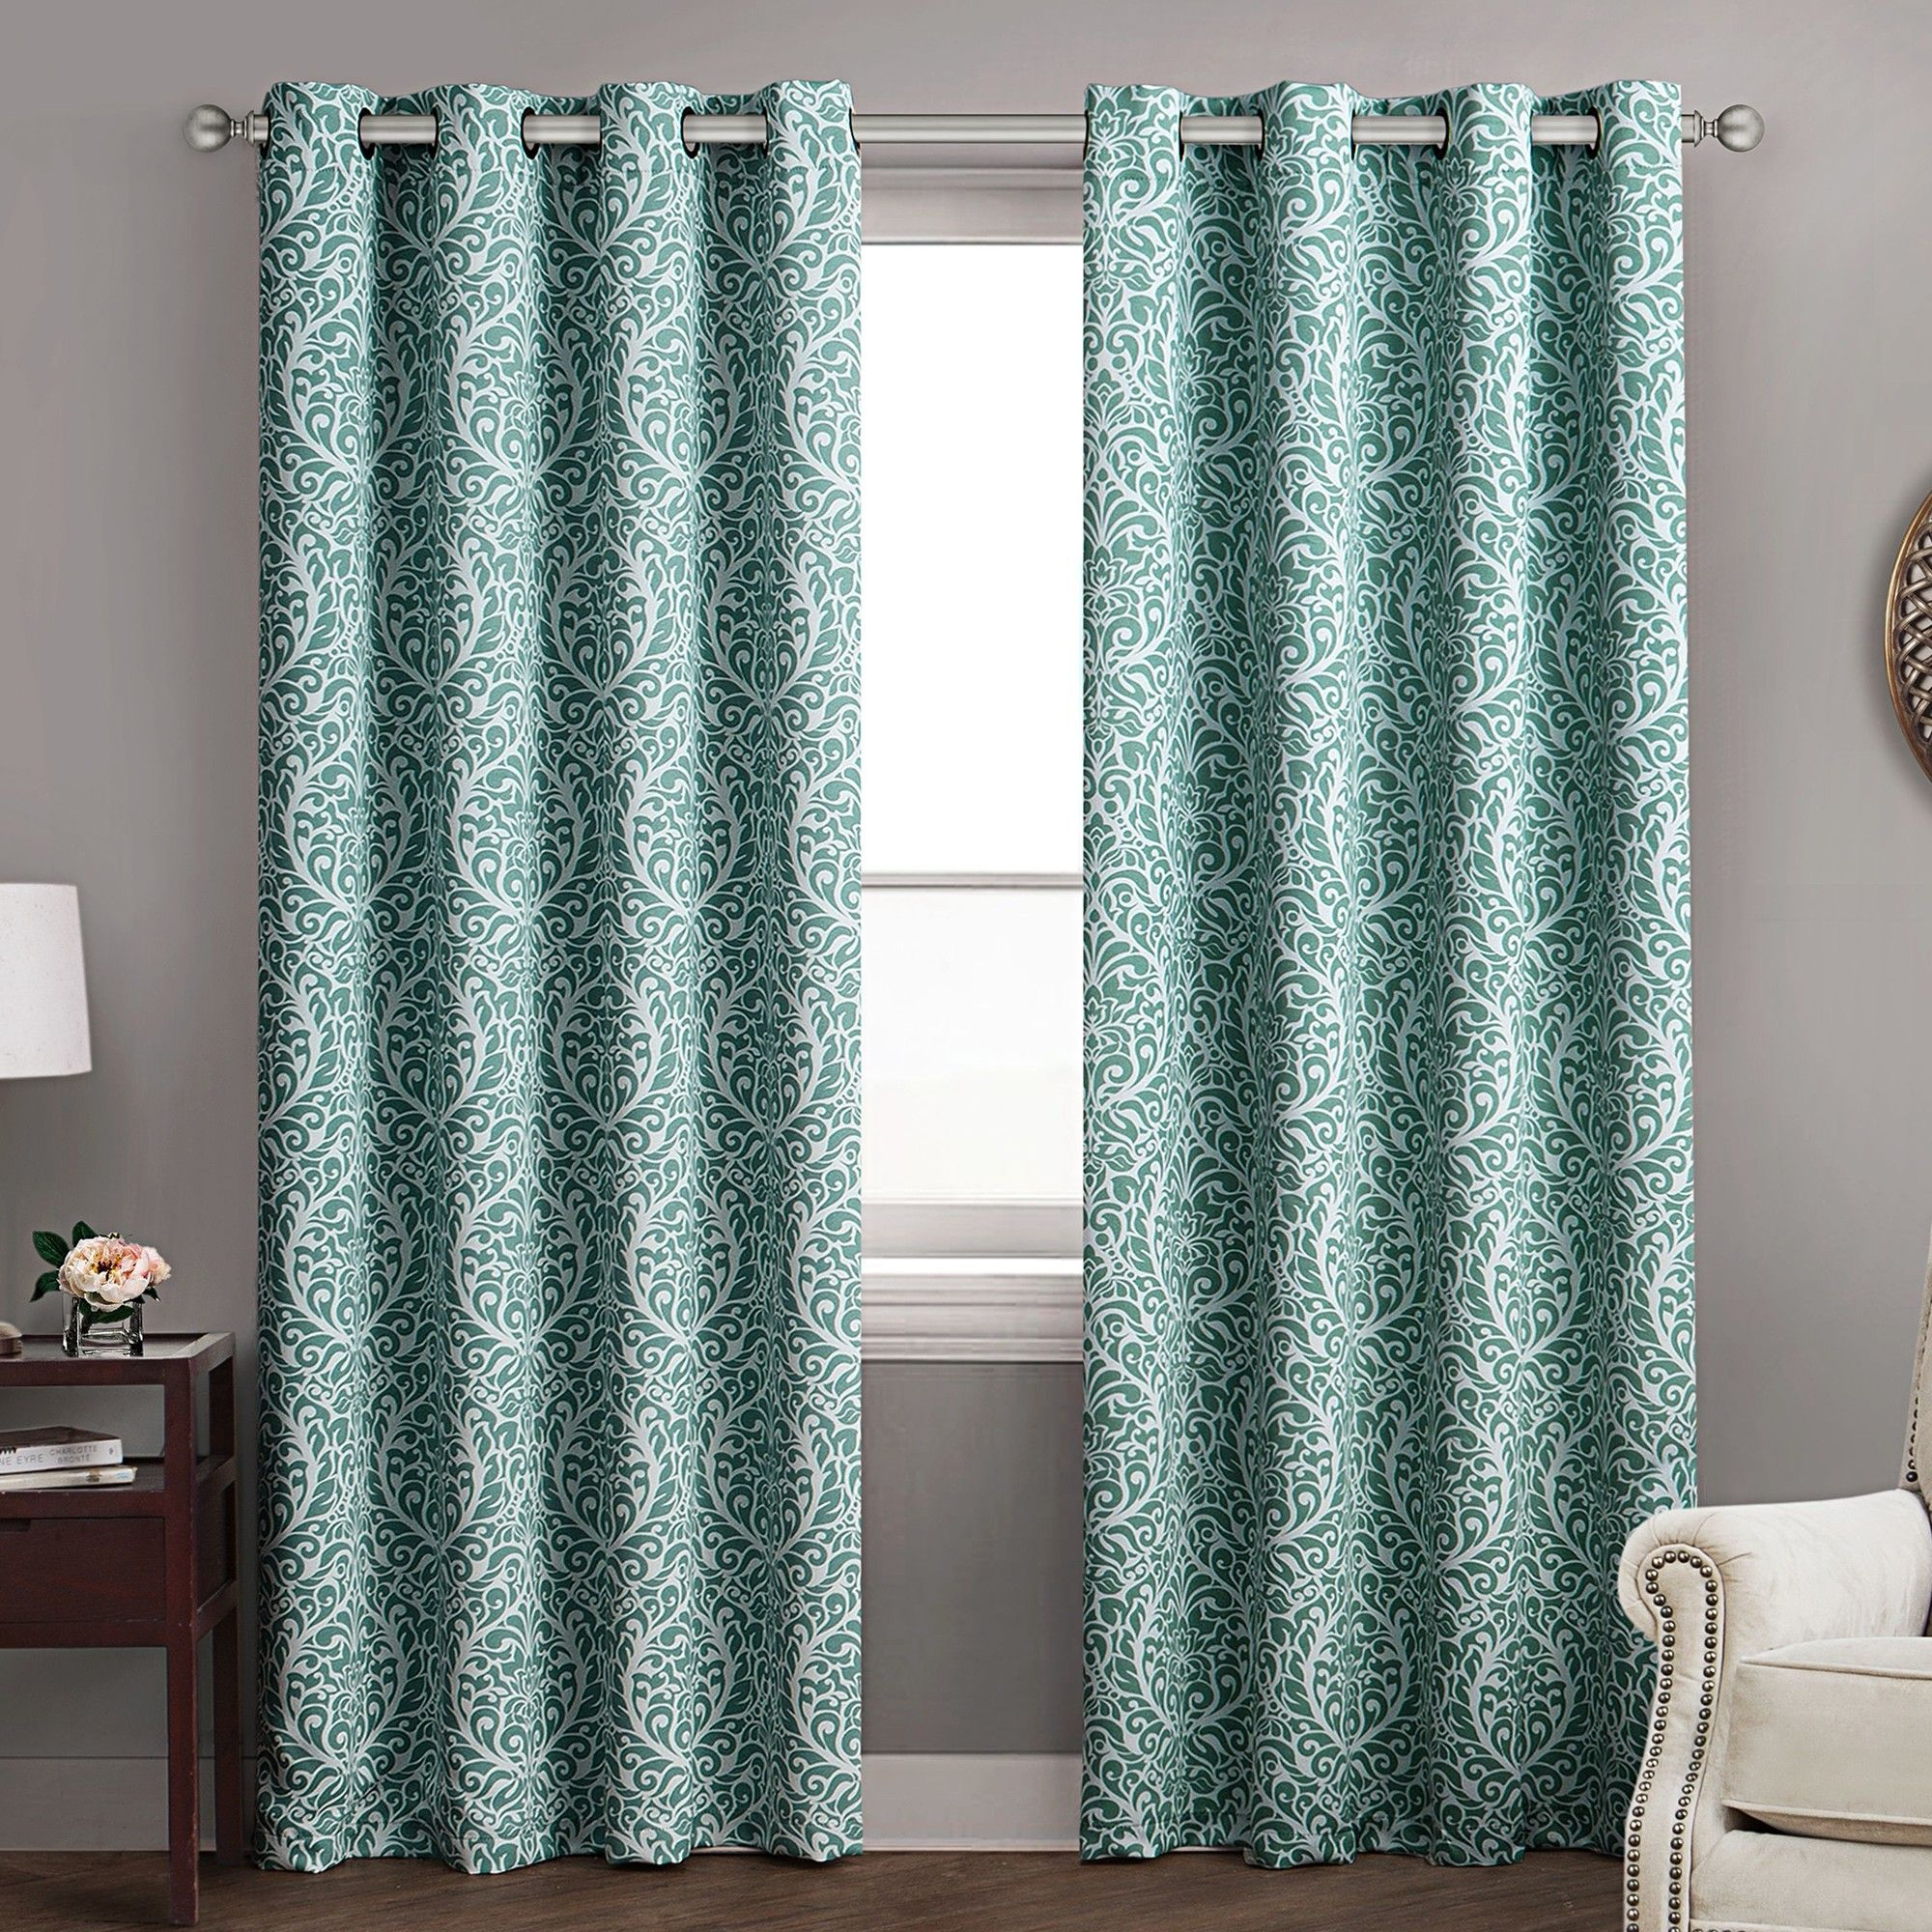 Pinckney Blackout Curtain Panels   Curtion   Curtains, Panel In Sunsmart Dahlia Paisley Printed Total Blackout Single Window Curtain Panels (View 16 of 30)